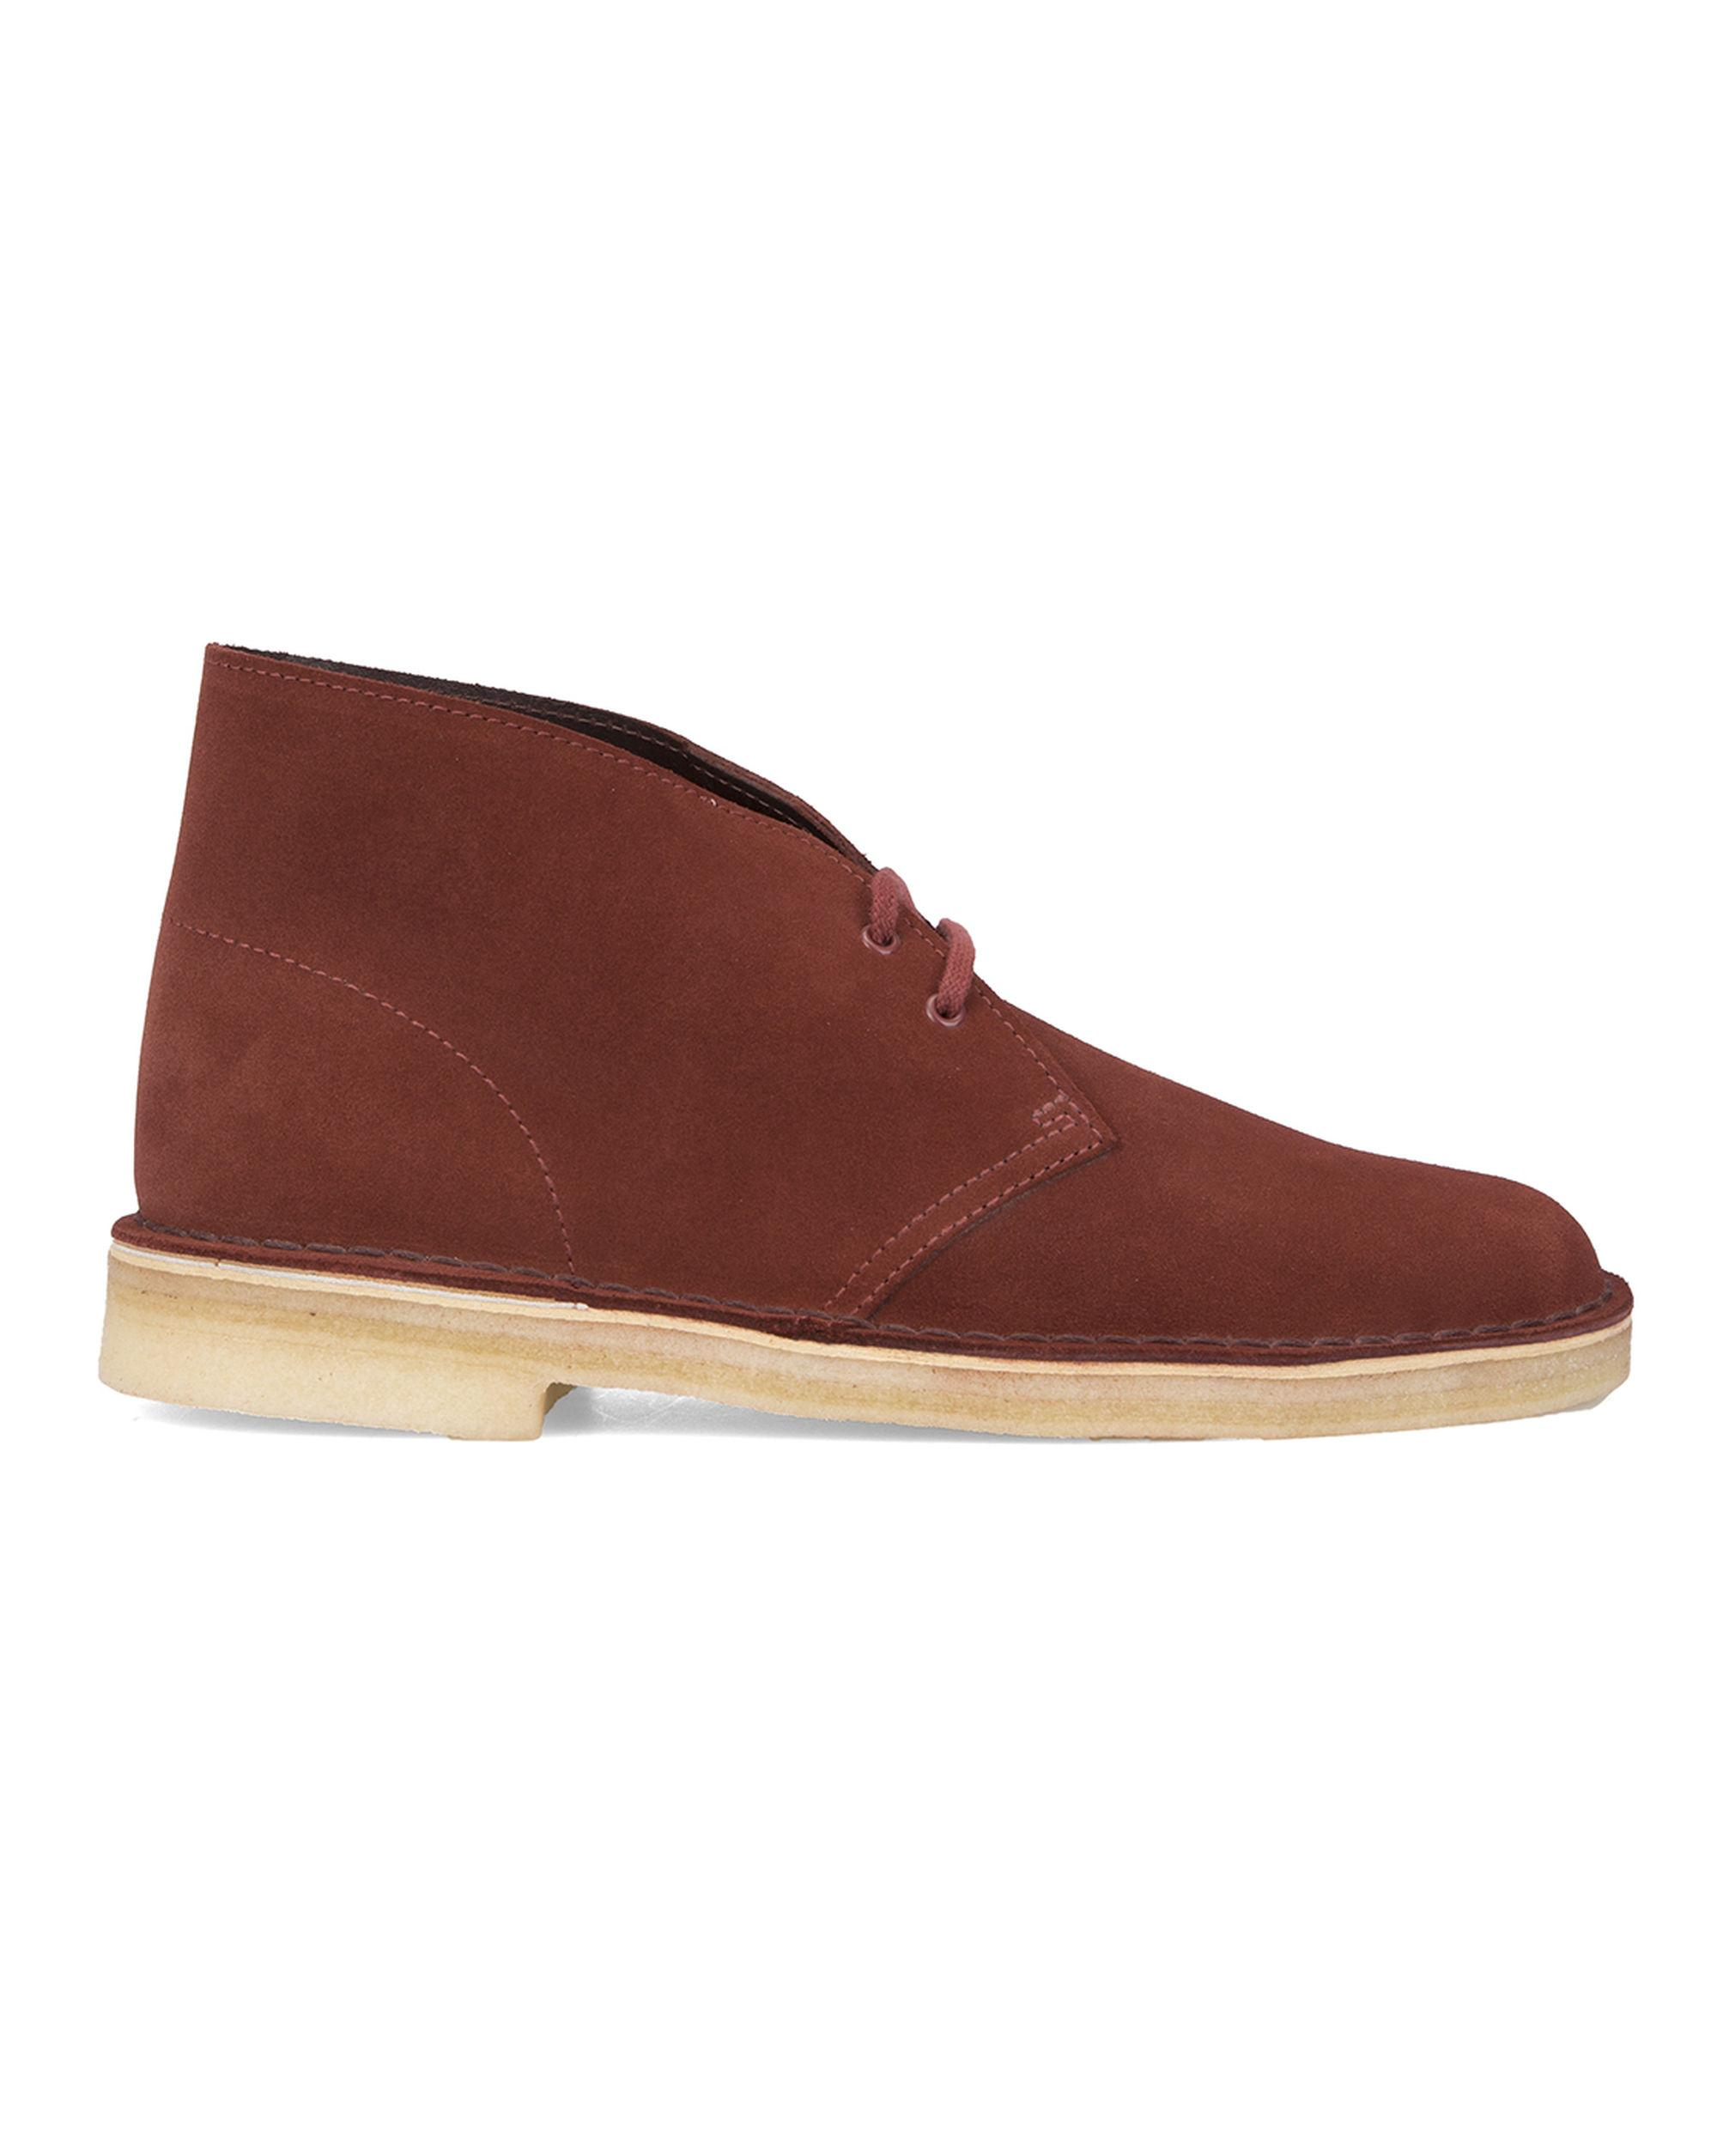 clarks light brown suede desert boots in brown for lyst